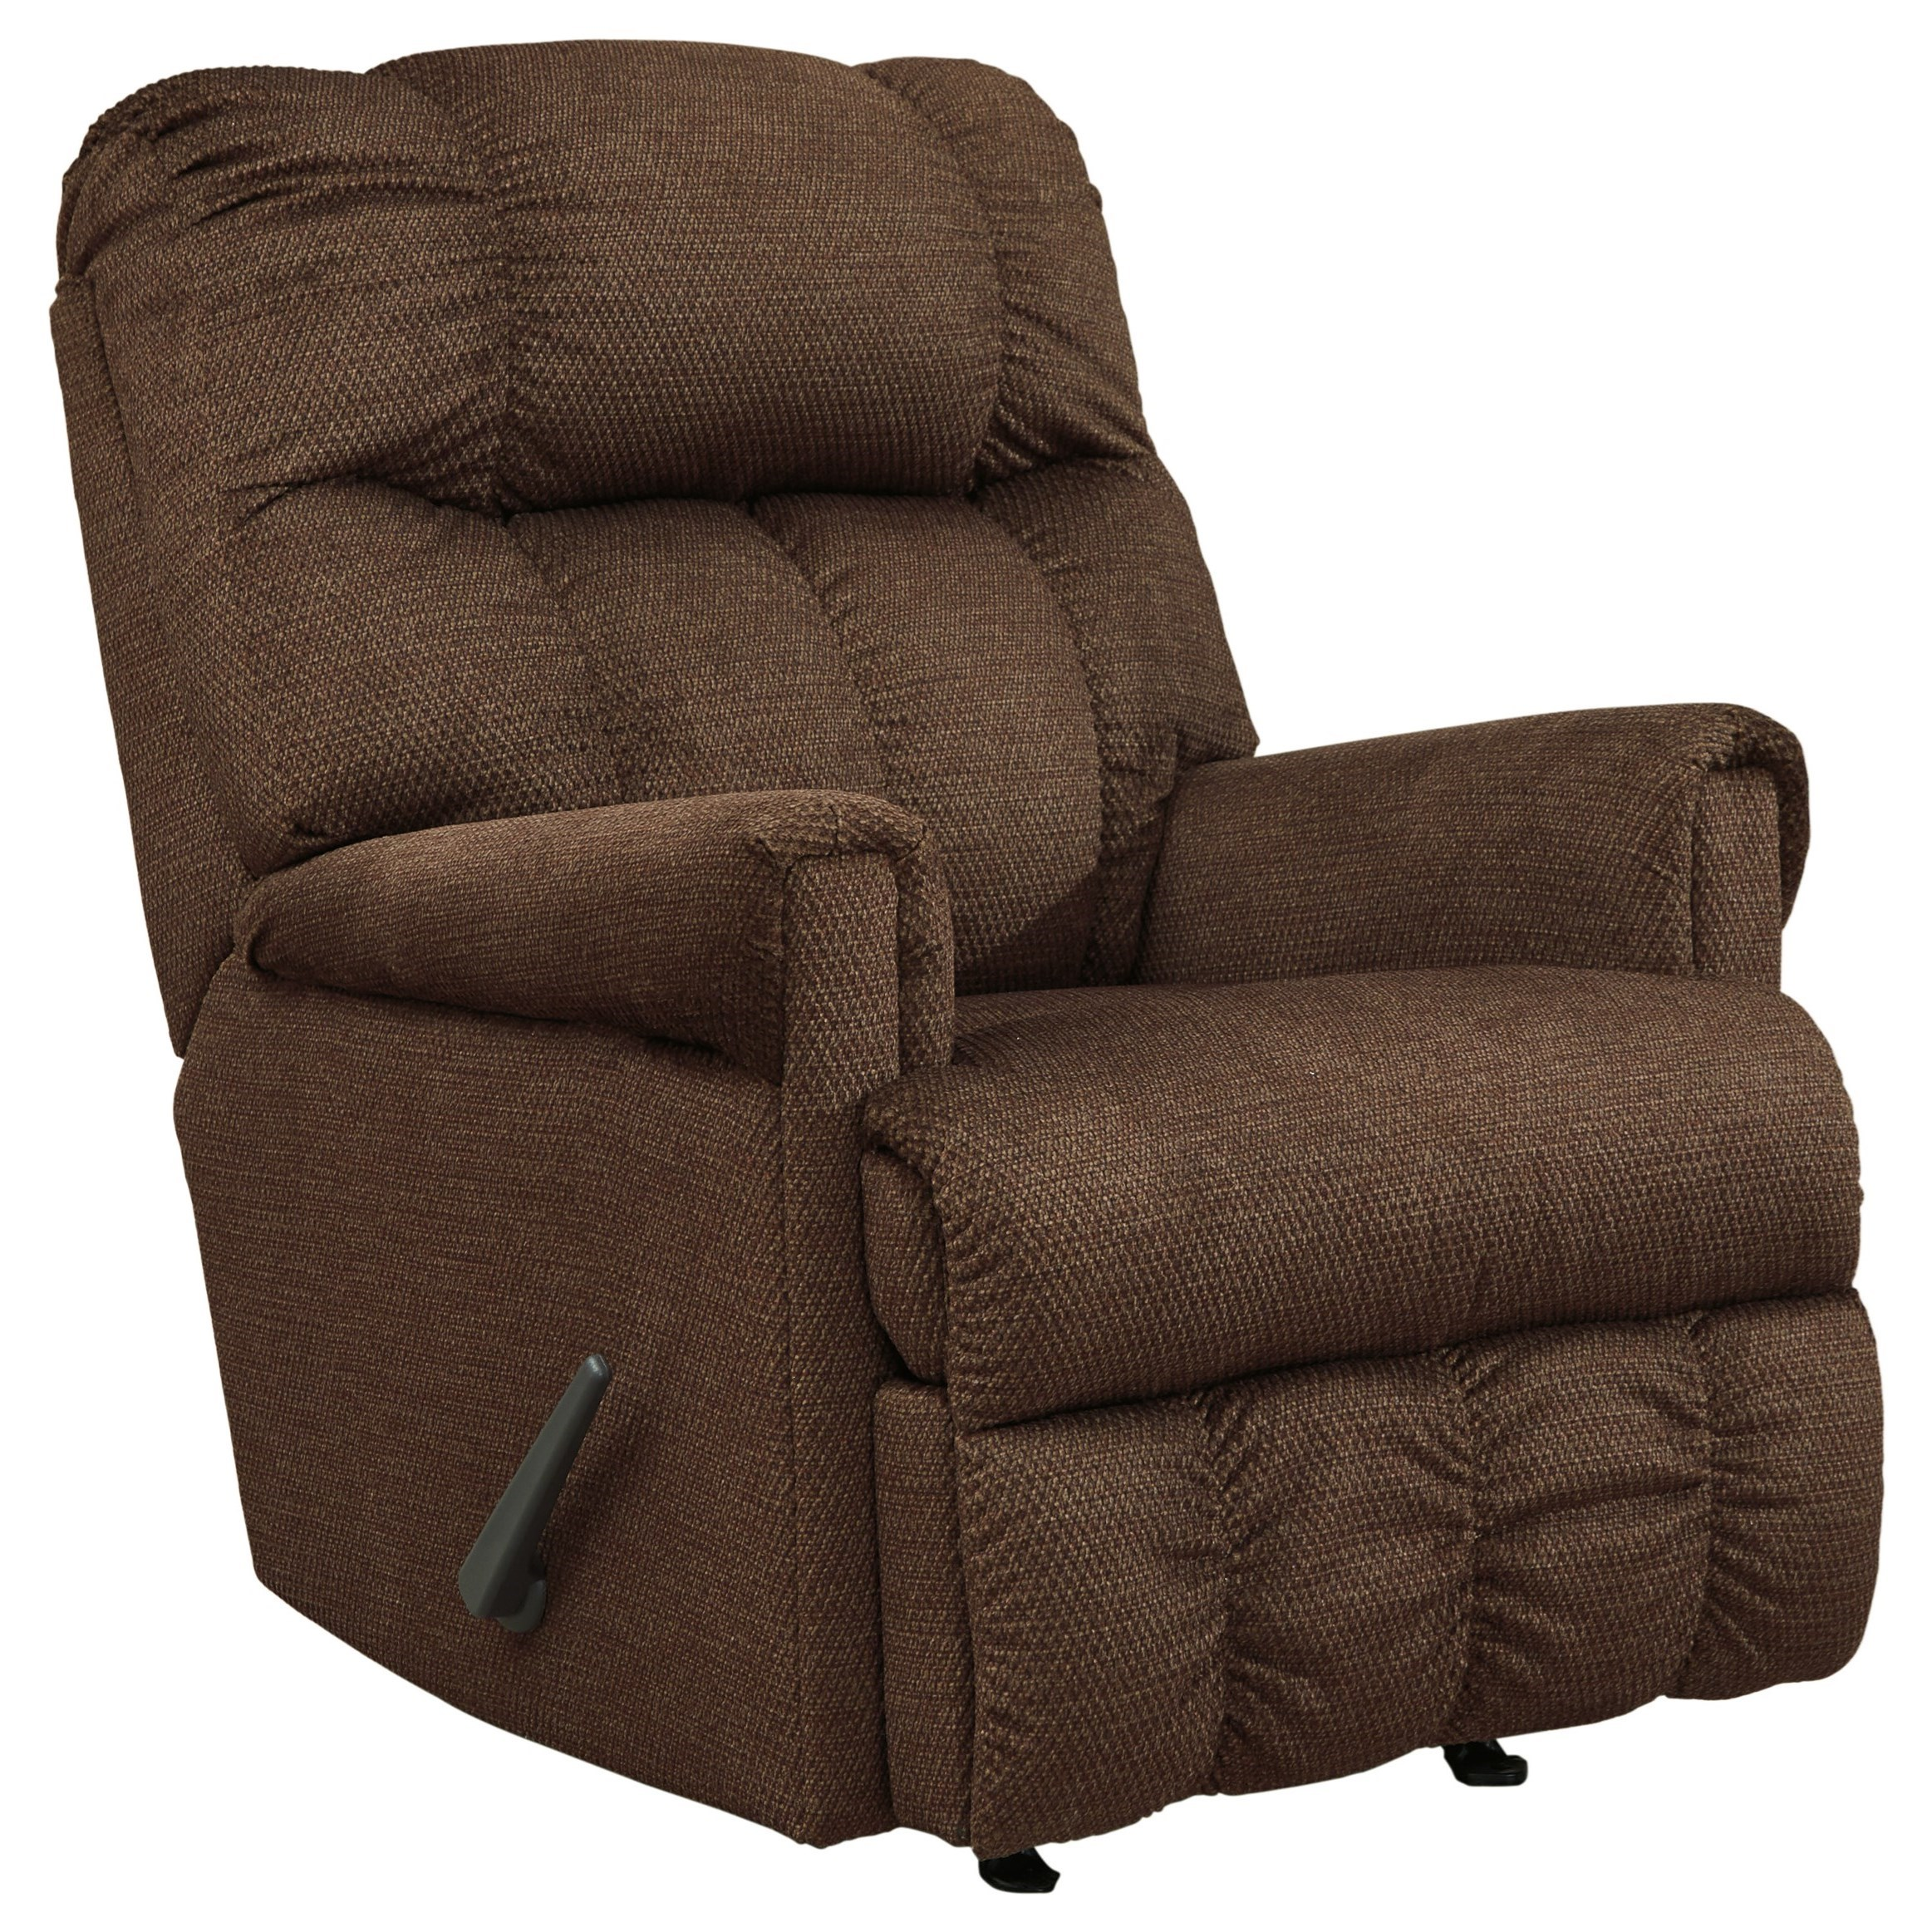 Signature Design by Ashley Craggly Rocker Recliner - Item Number: 3680425